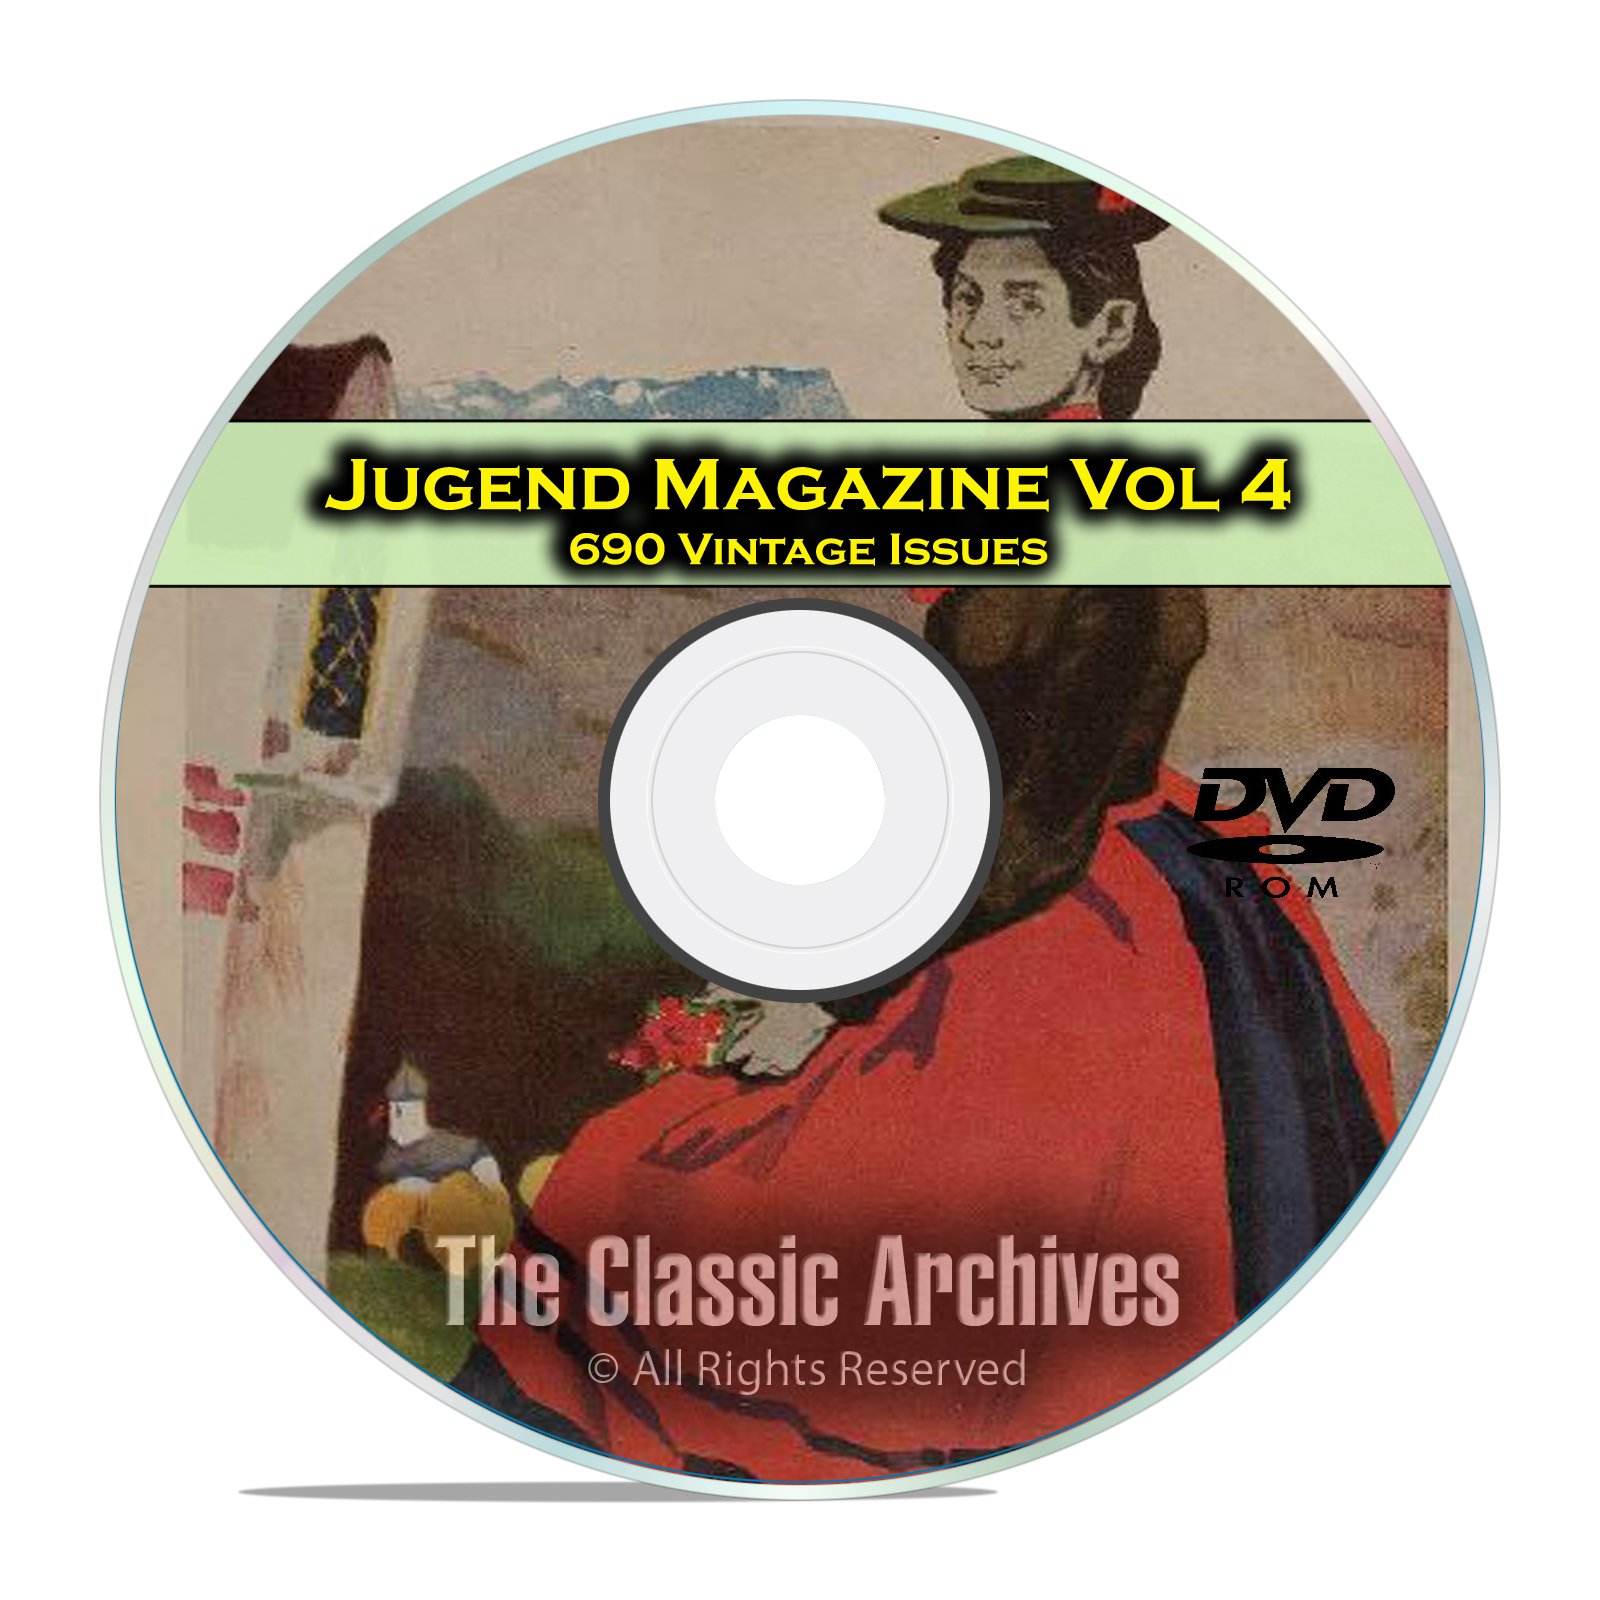 Jugend Vintage German Art Nouveau Magazine Jugendstil, 690 Issues Vol 4 DVD